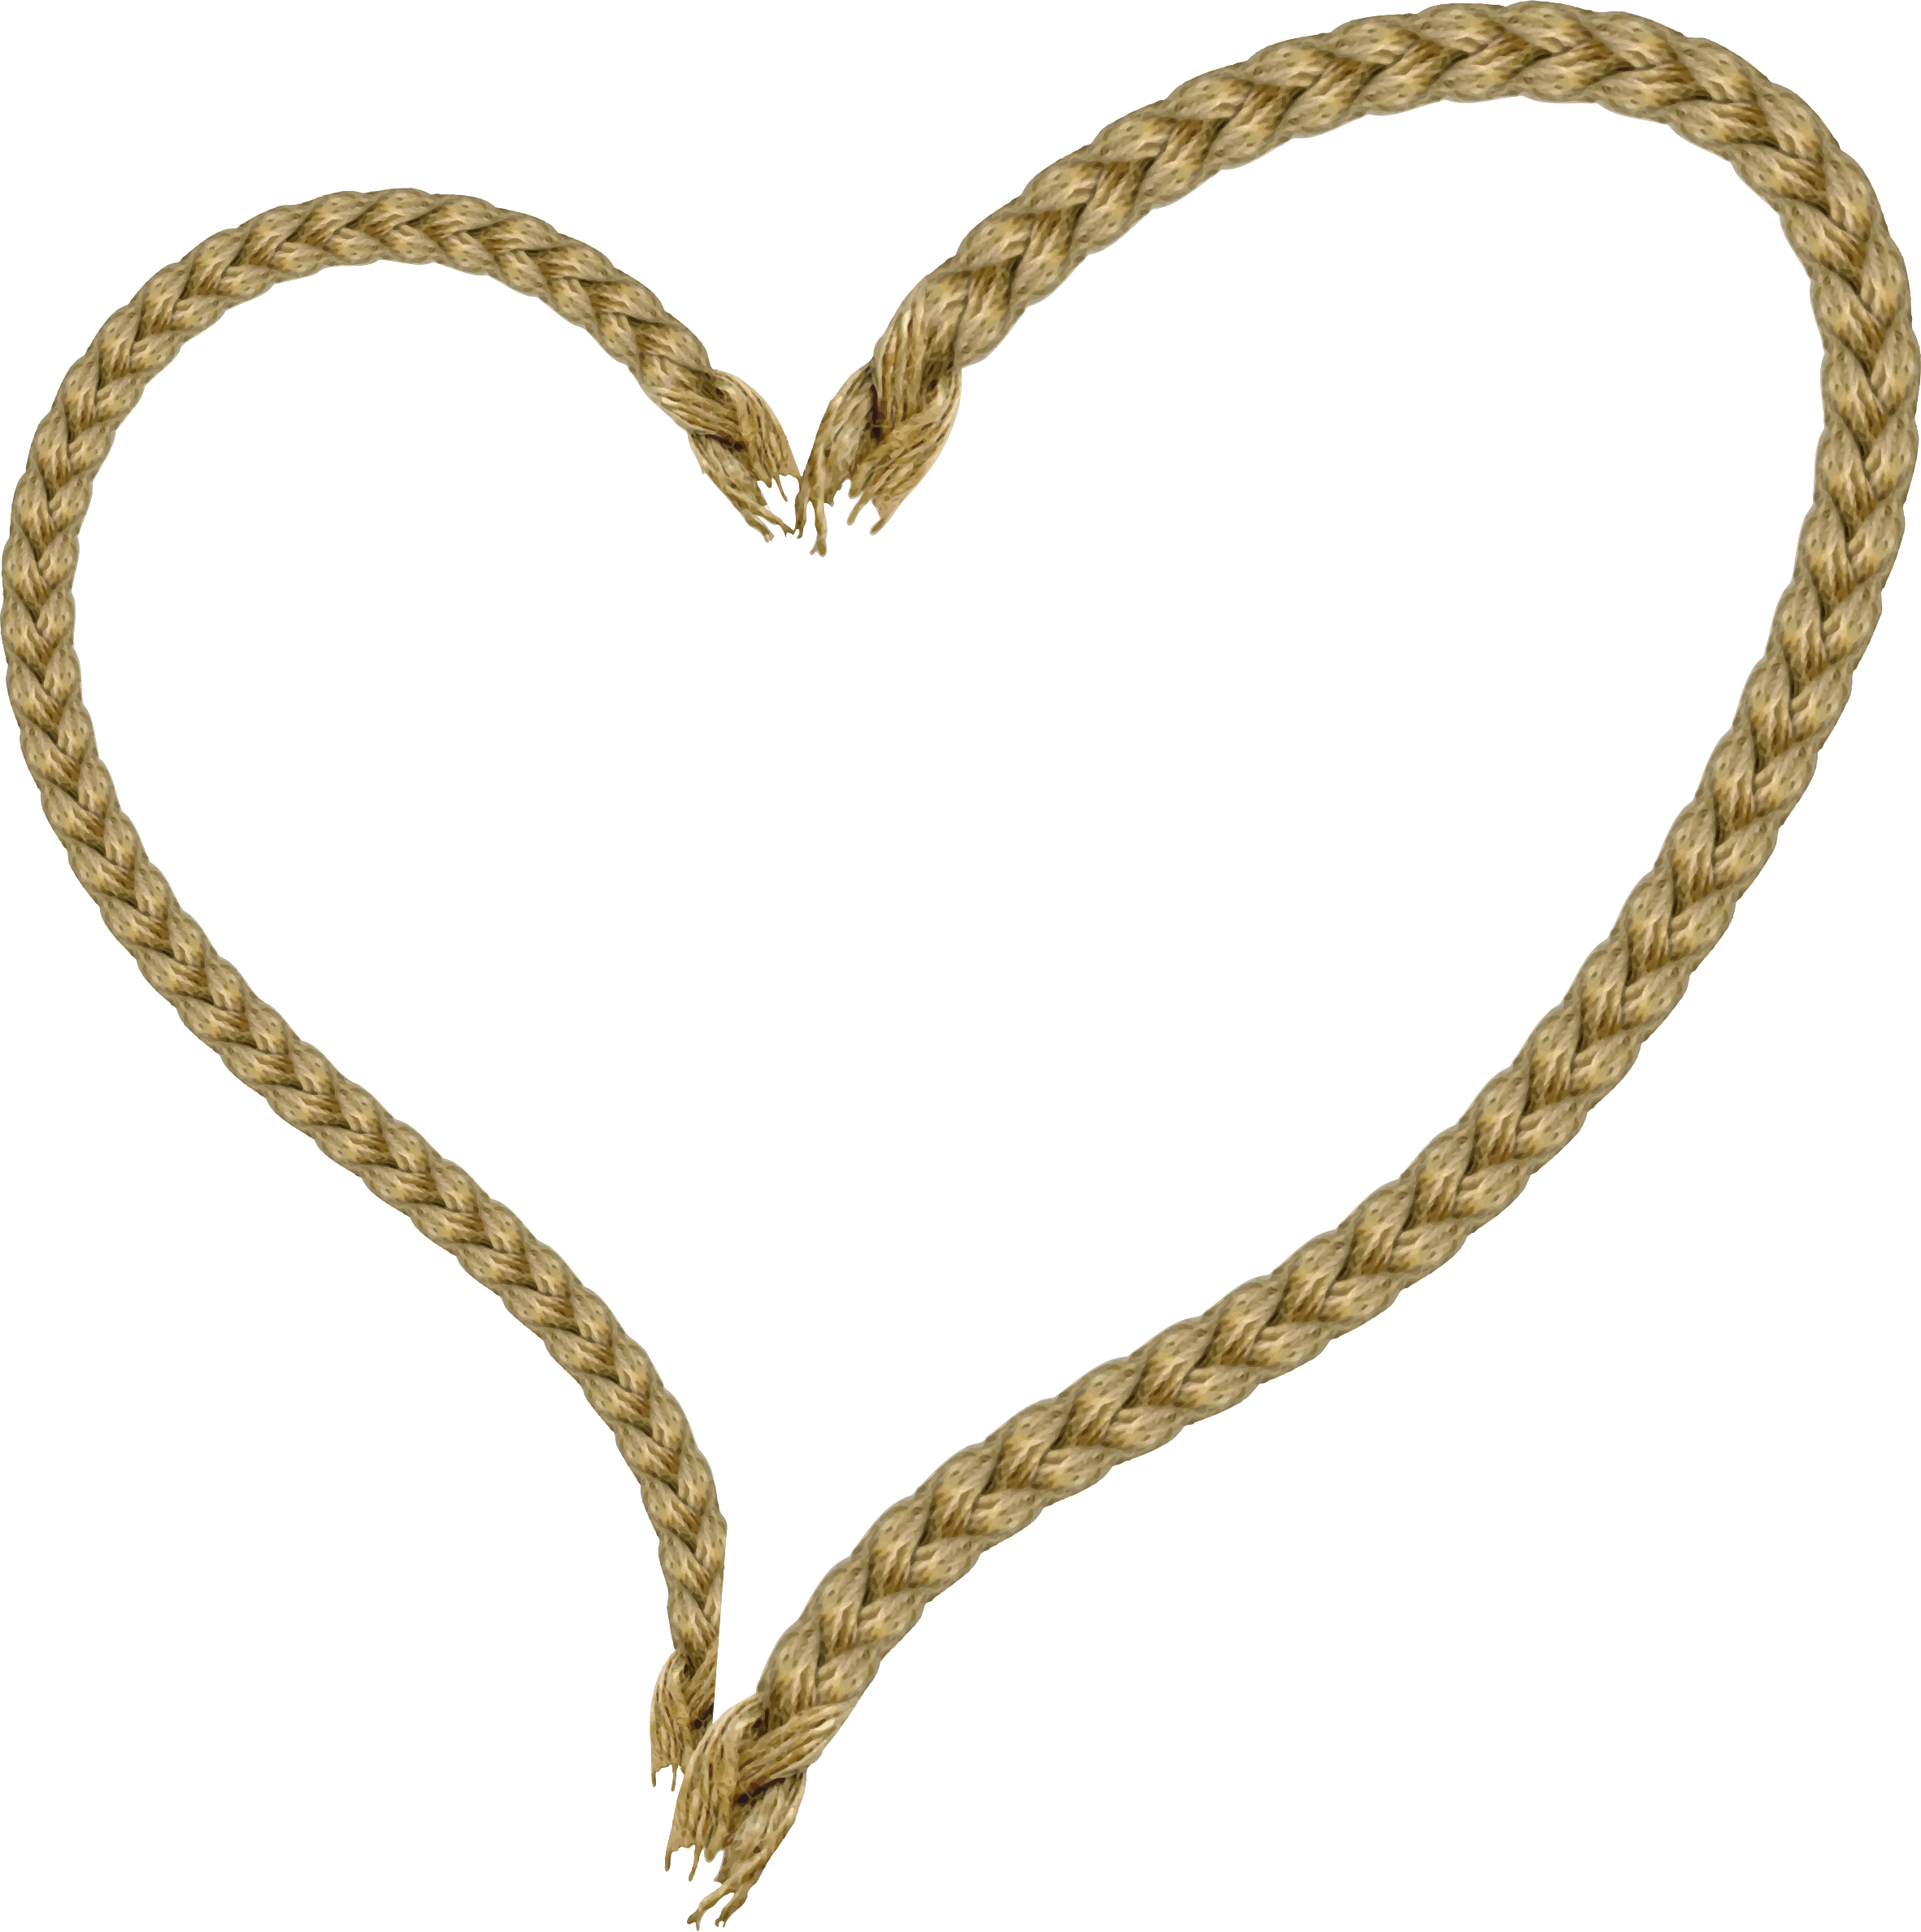 Clipart heart rope. Big image png